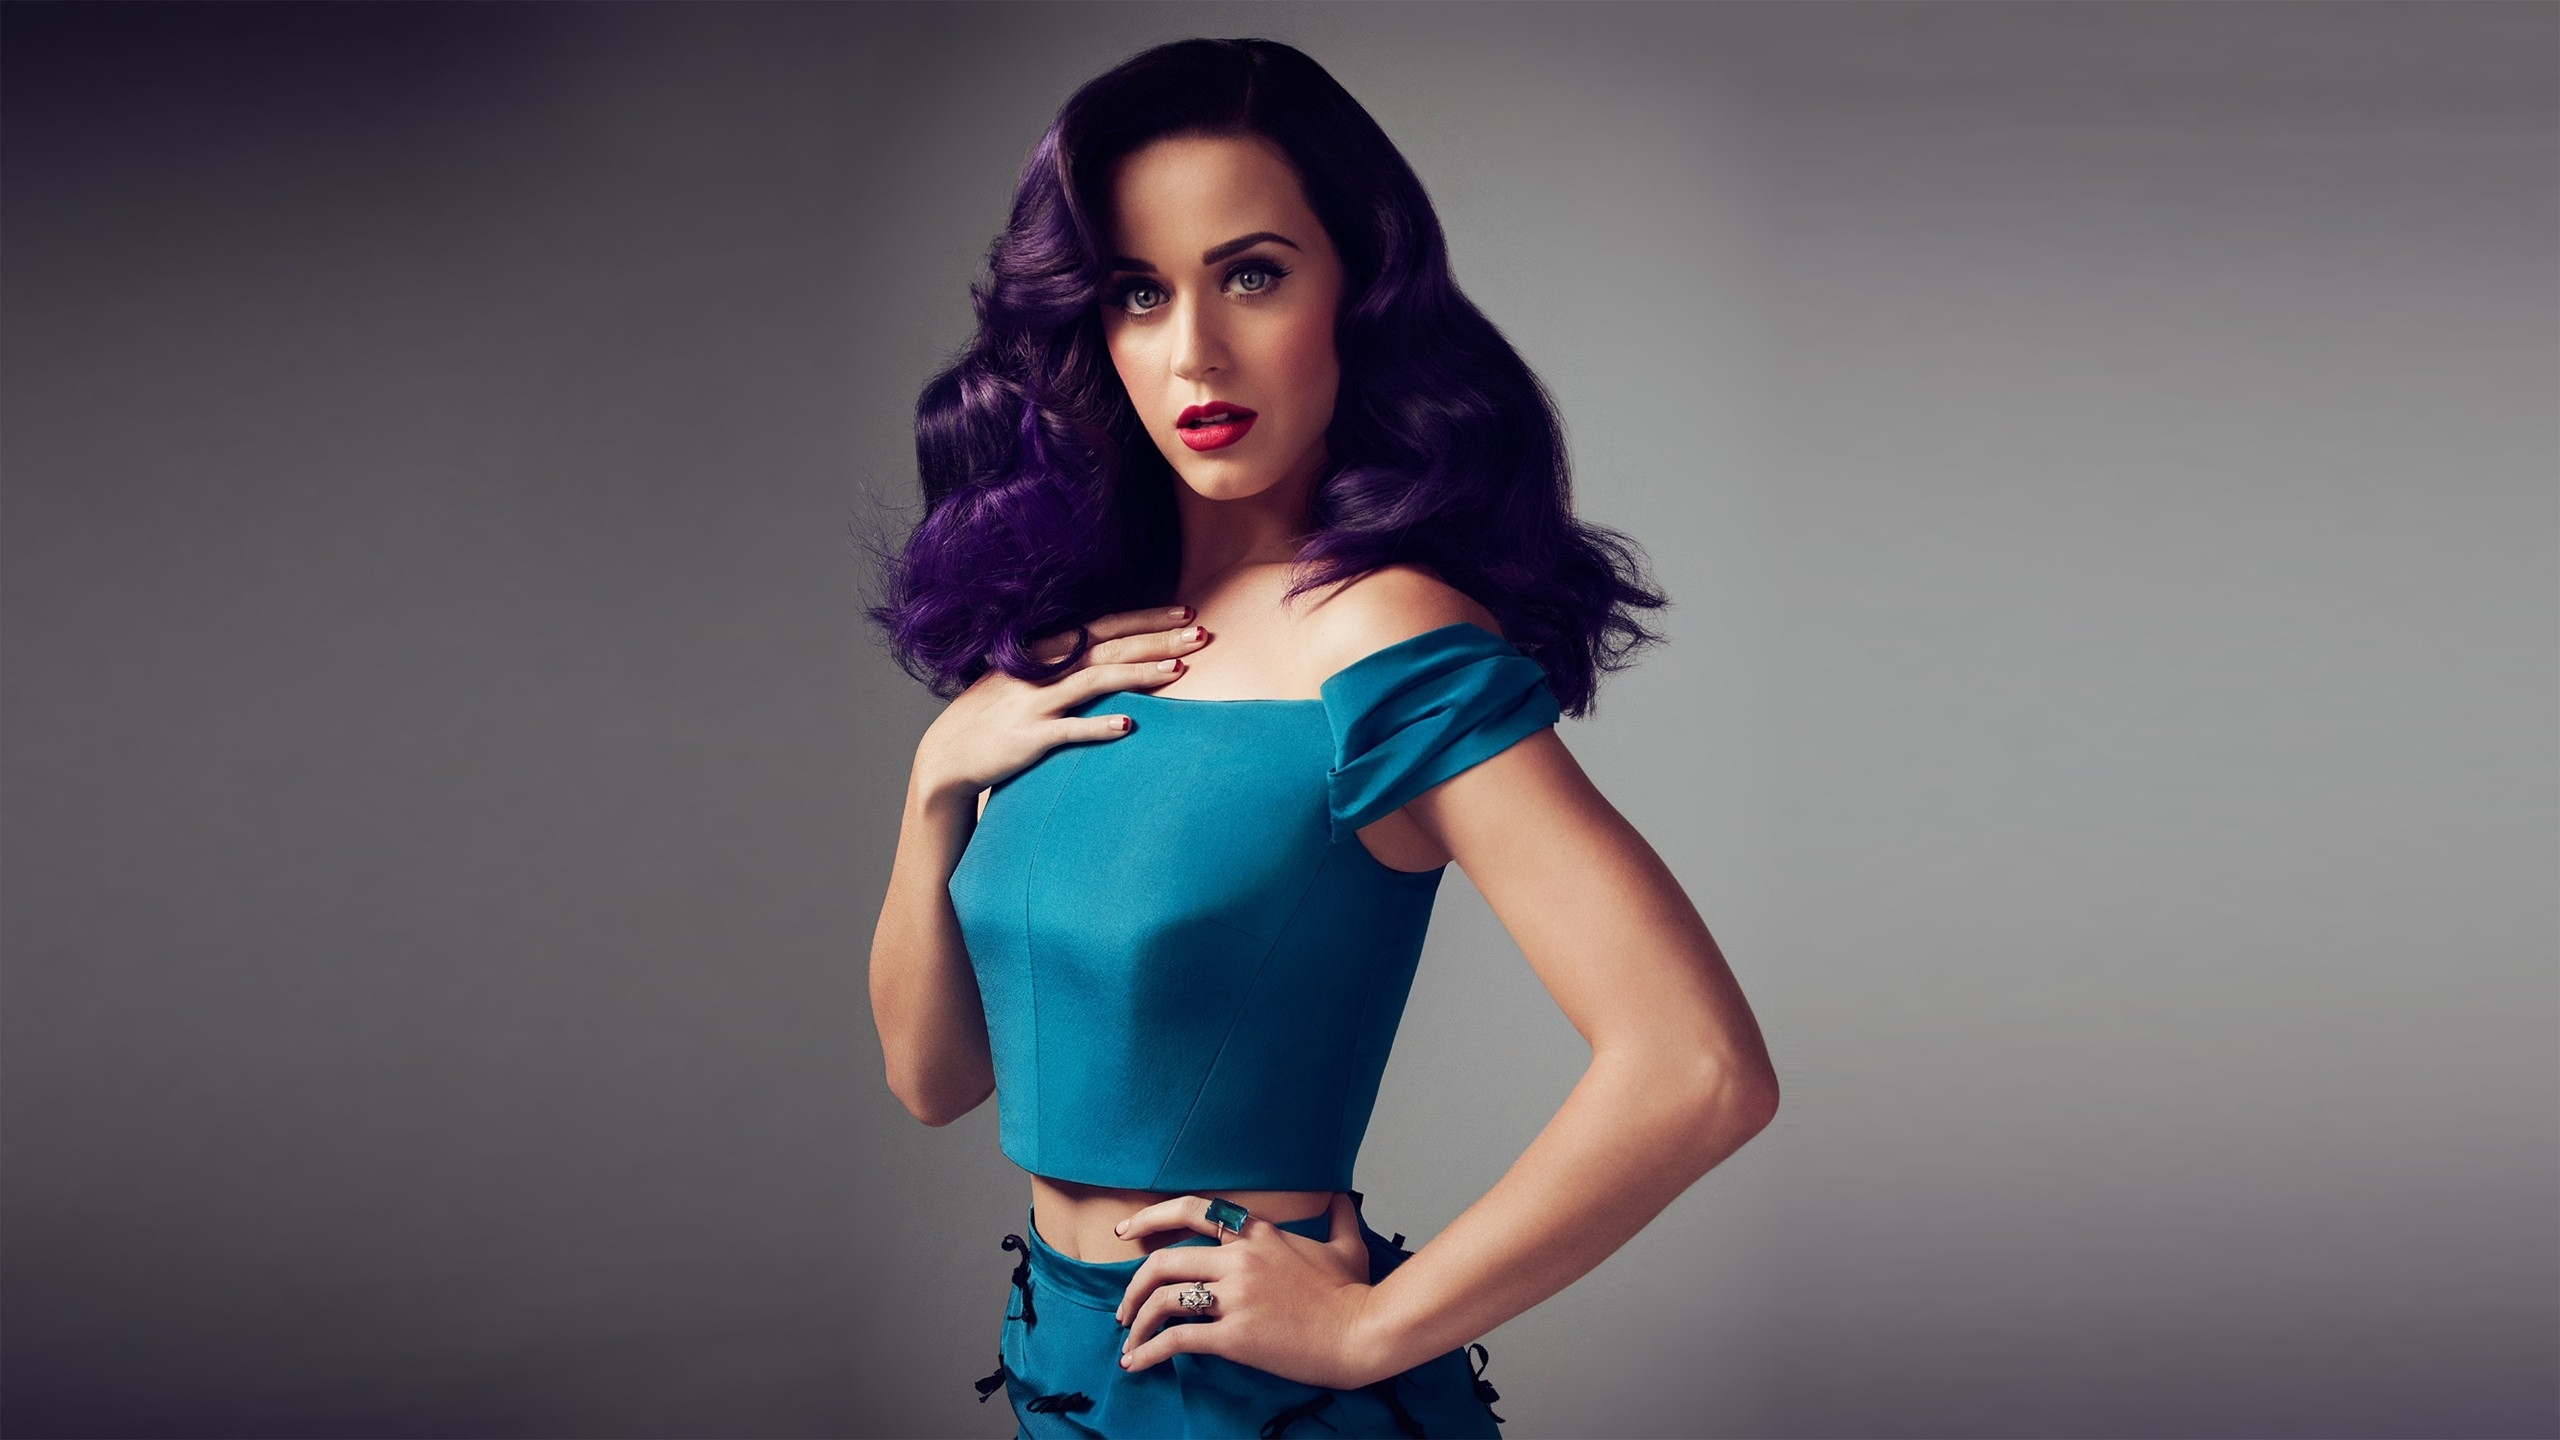 10 Most Popular Katy Perry Hd Wallpaper FULL HD 1920×1080 For PC Desktop